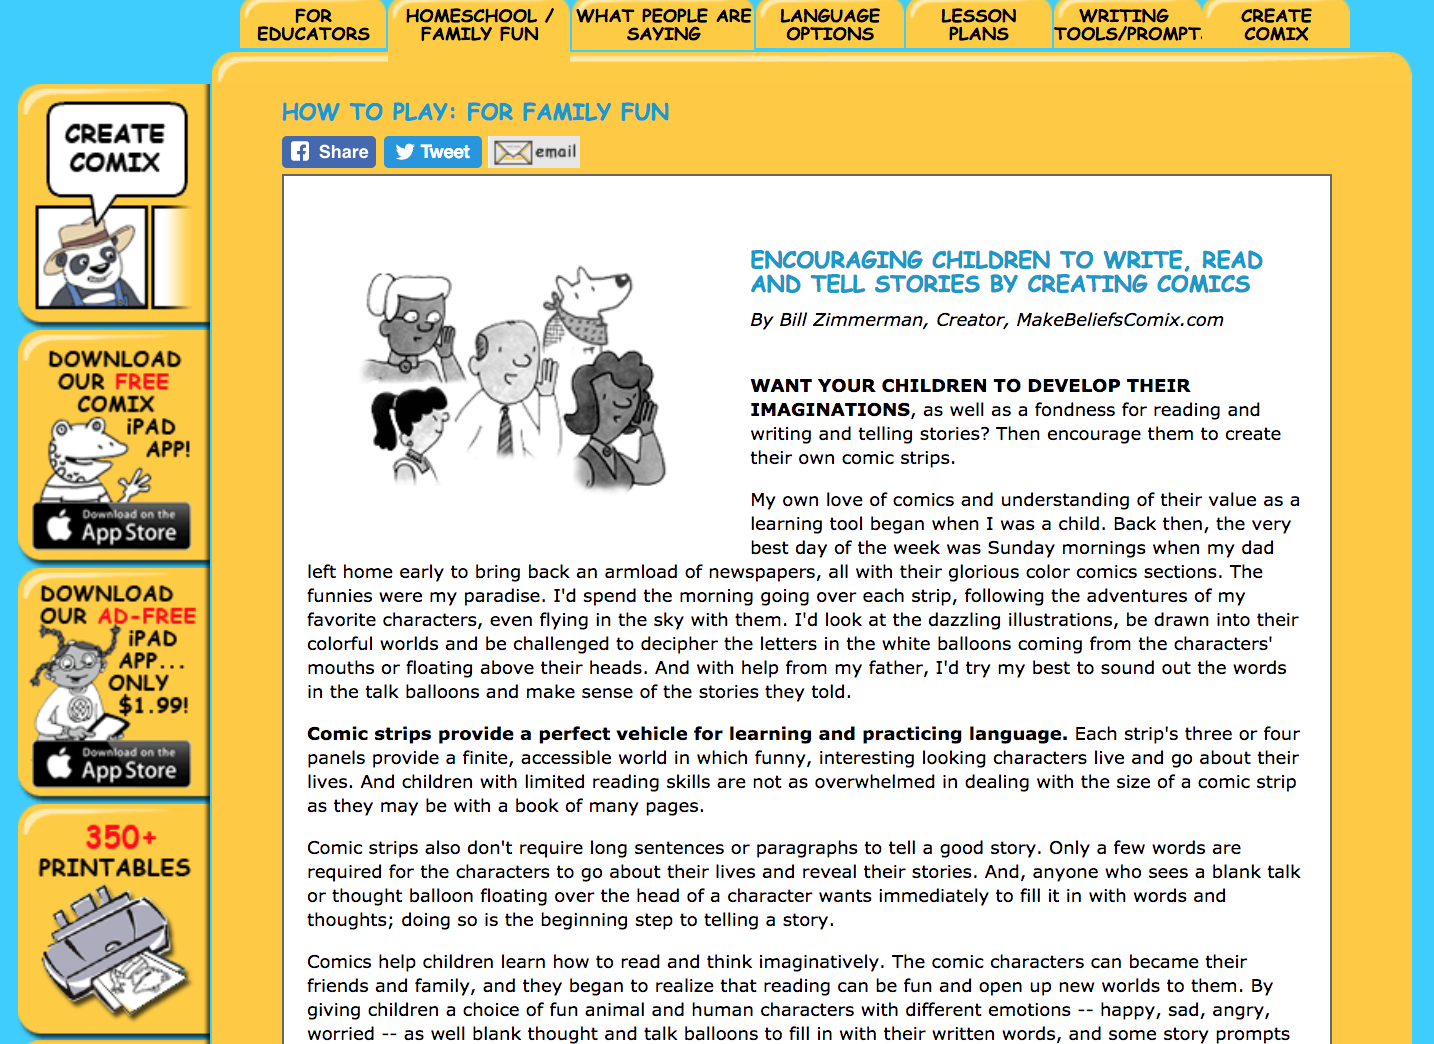 Make Beliefs Comix Review for Teachers | Common Sense Education